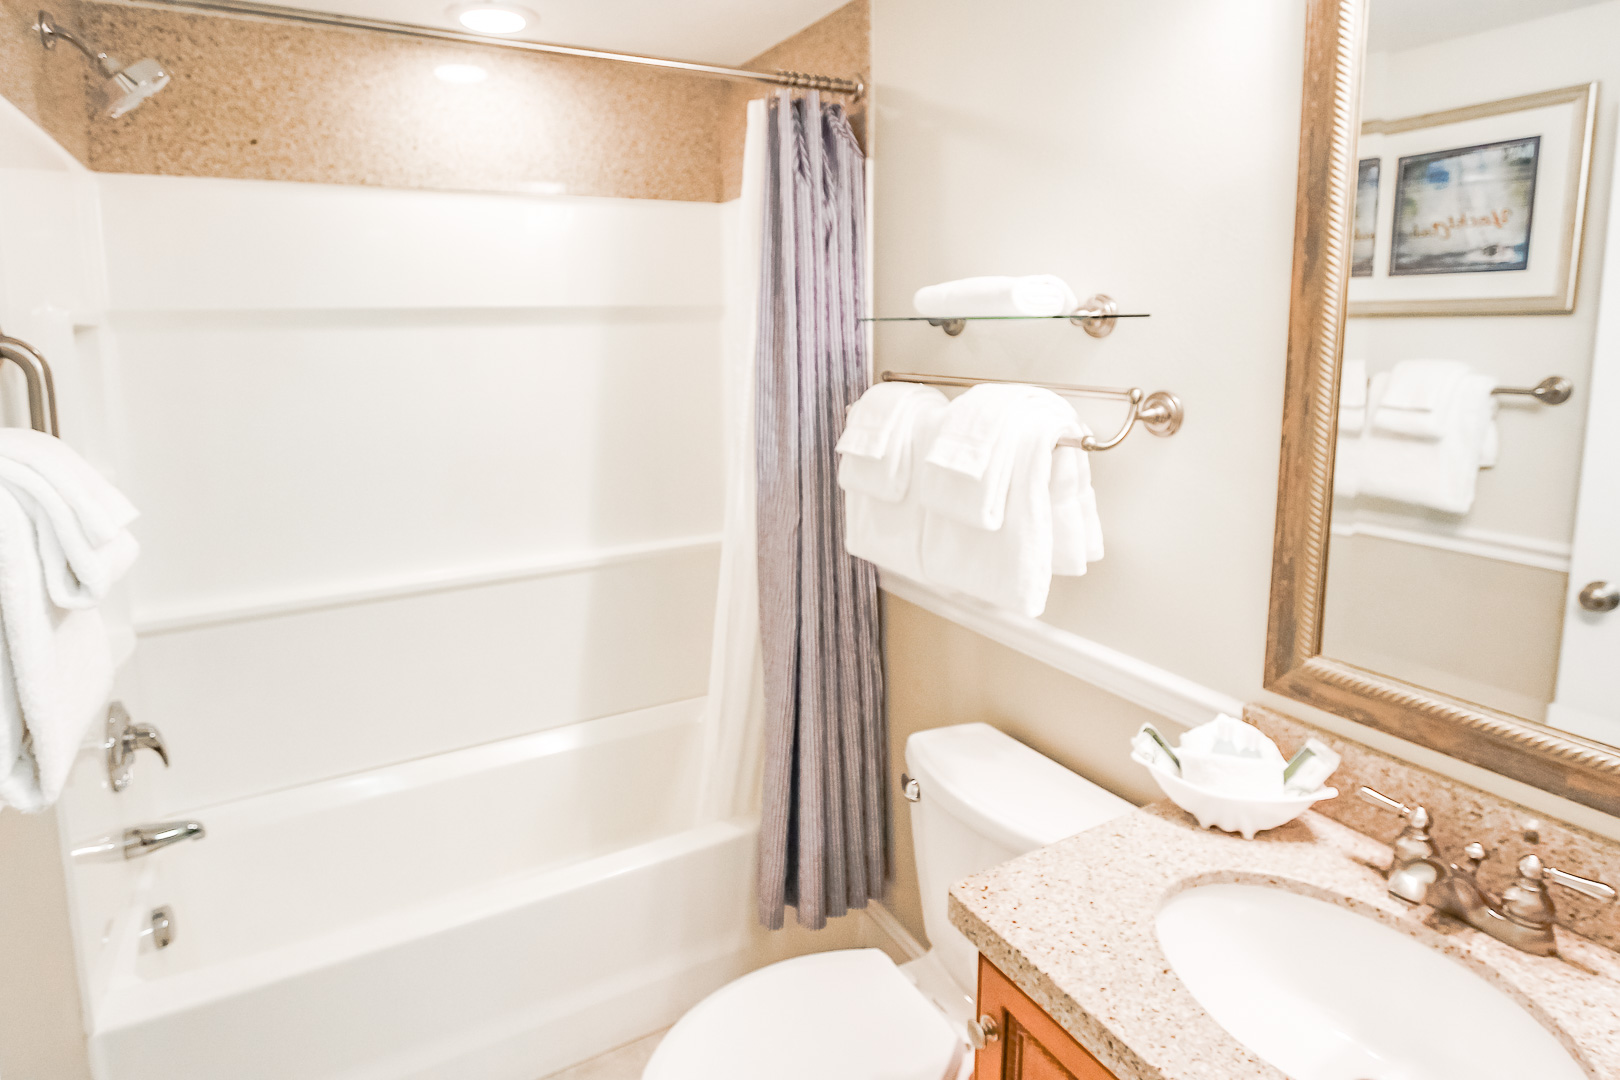 A clean bathroom at VRI's The Cove at Yarmouth in Massachusetts.